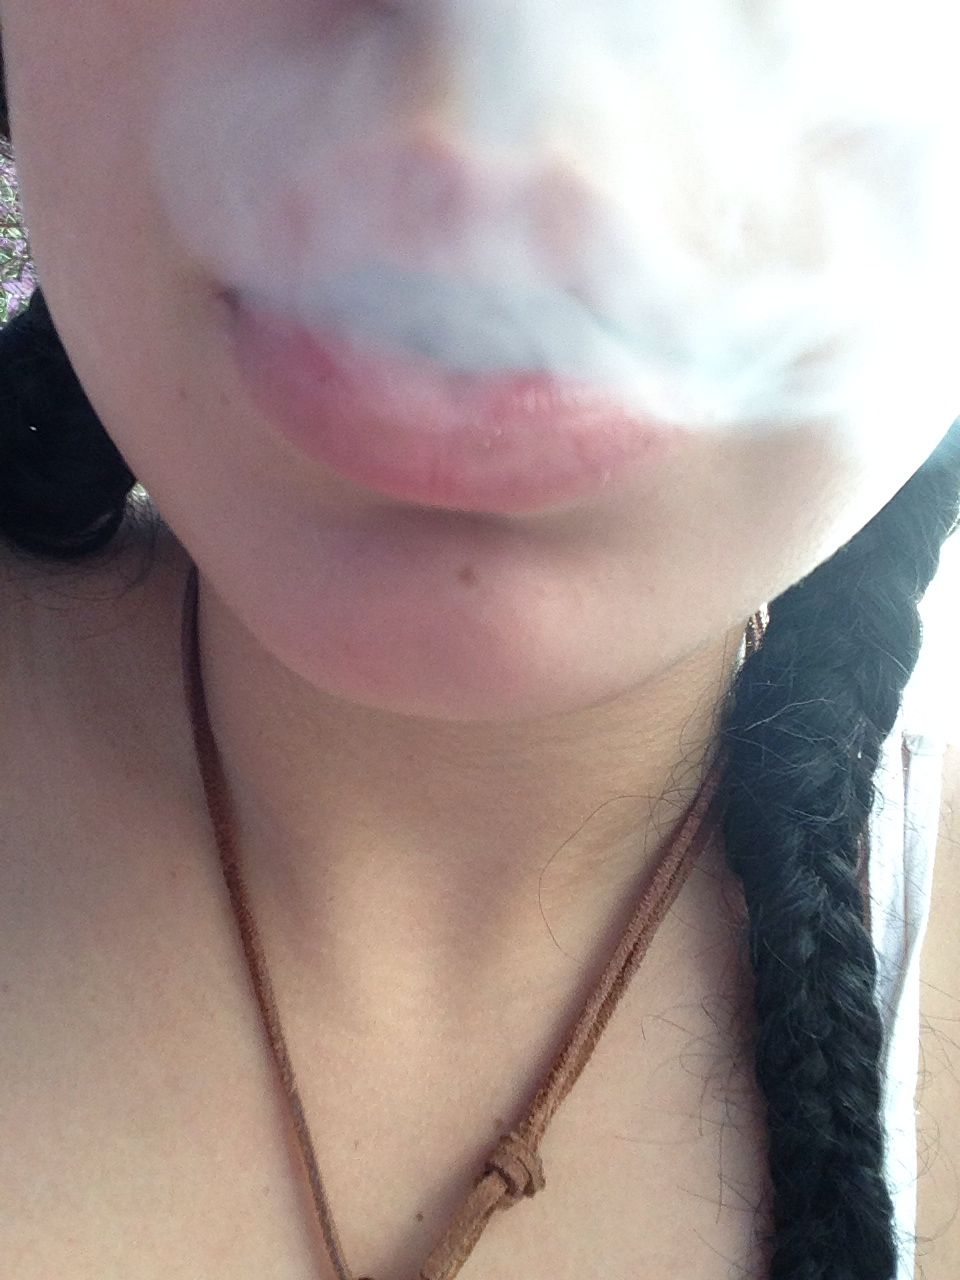 Smoke,Hippie,braids,Quartz,lips